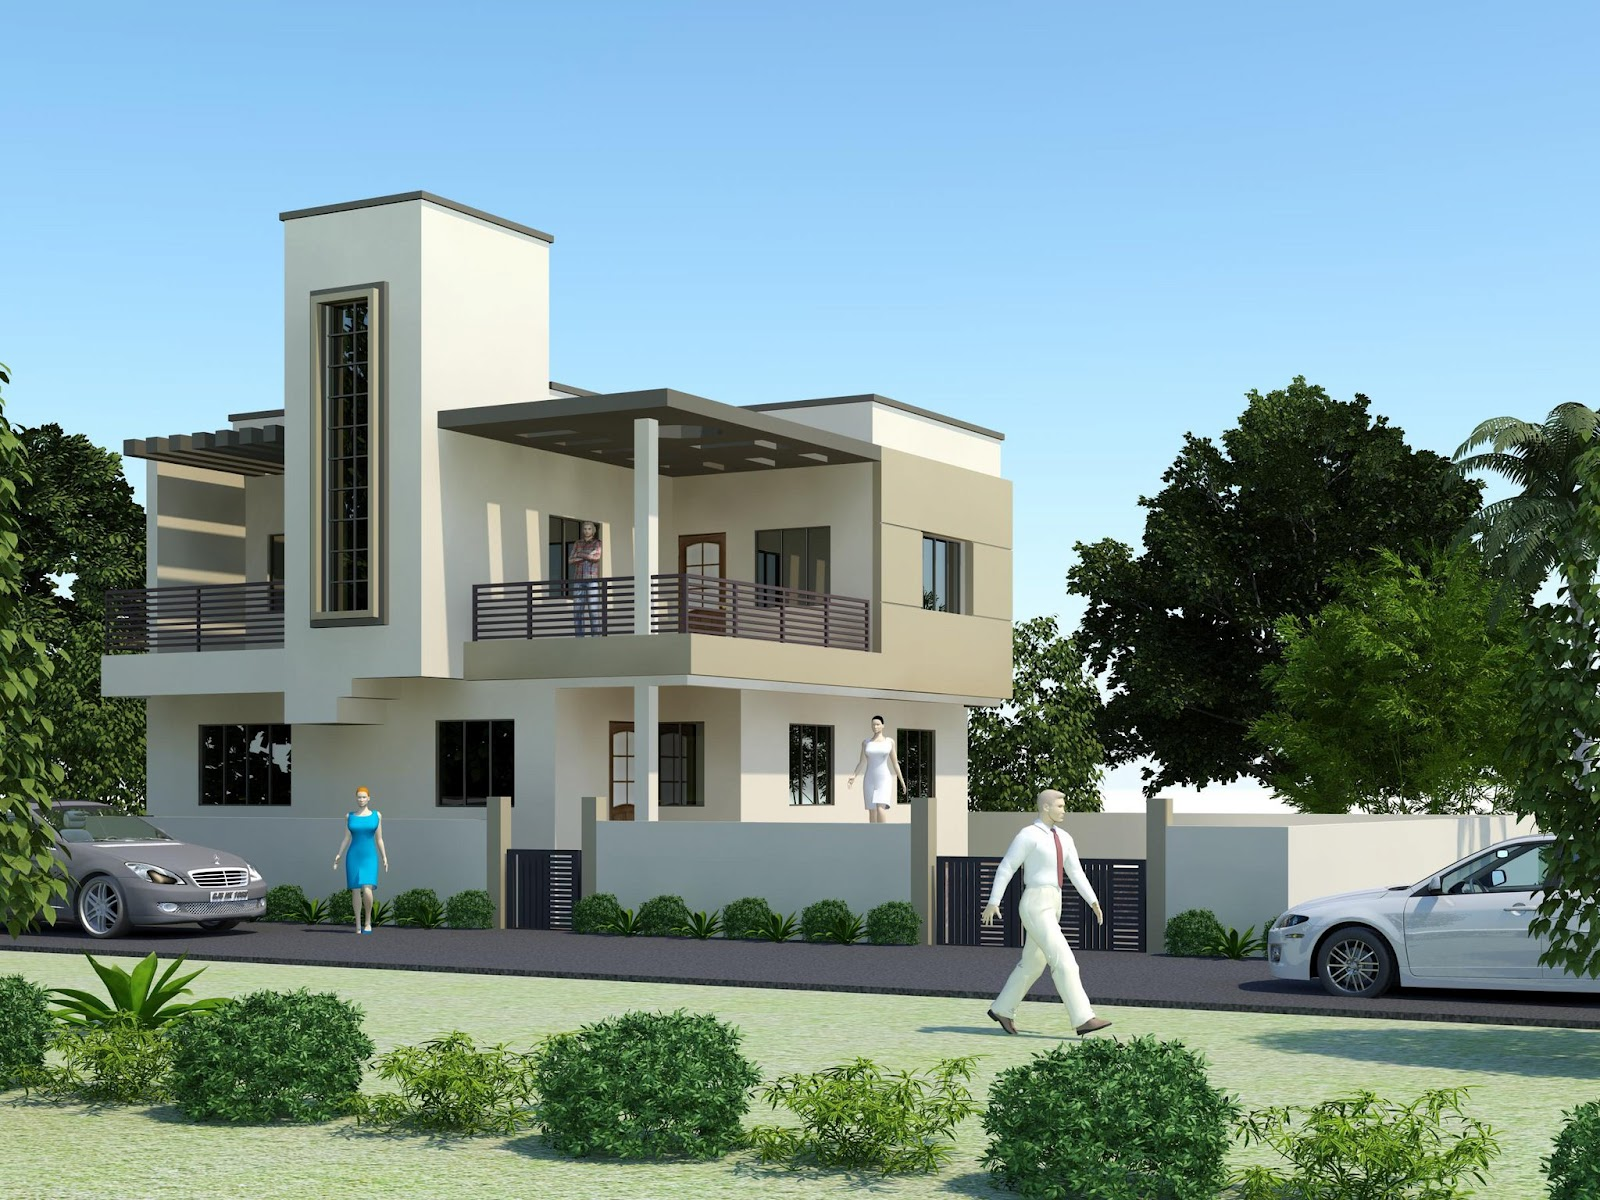 New home designs latest modern homes exterior designs for Pakistani new home designs exterior views